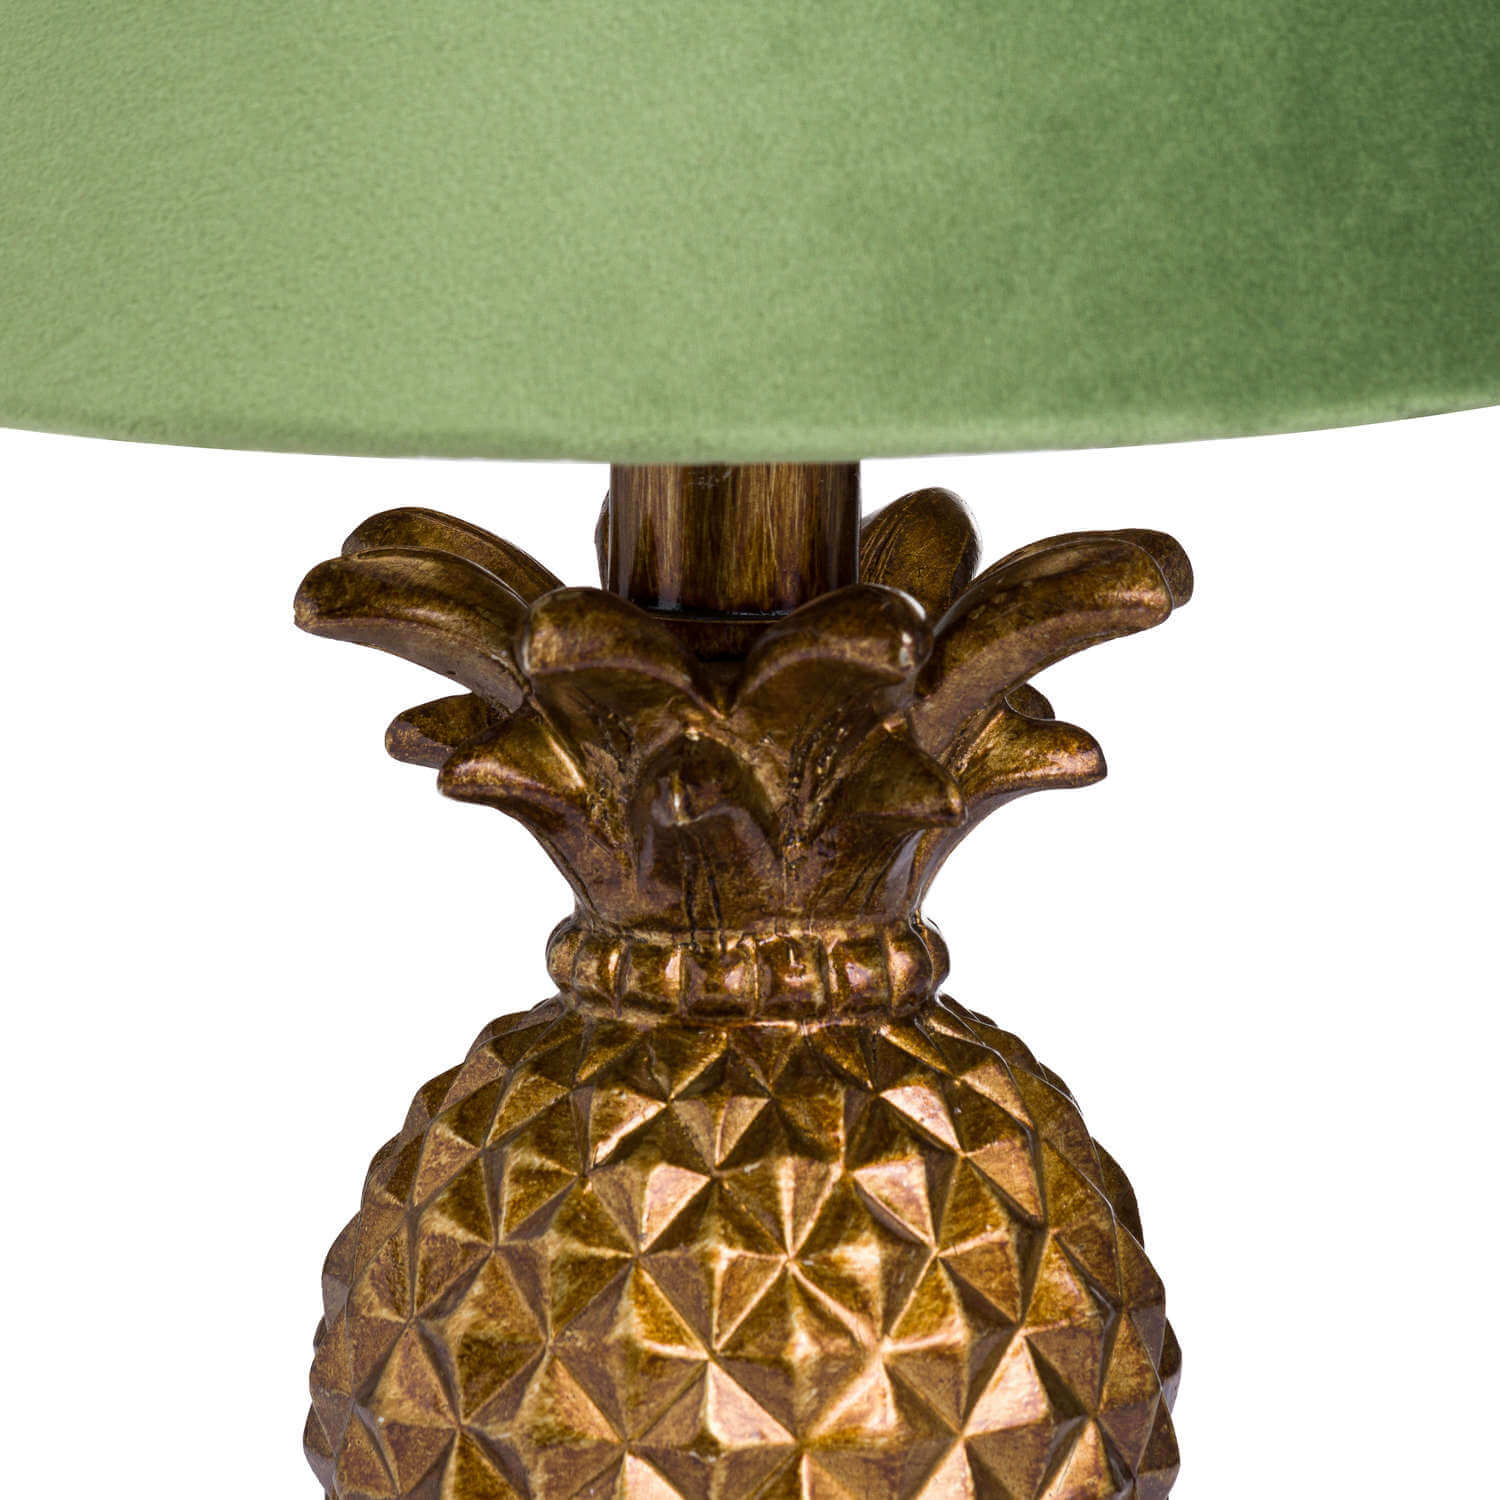 Antique Gold Pineapple Lamp With Artichoke Green VelvetShade